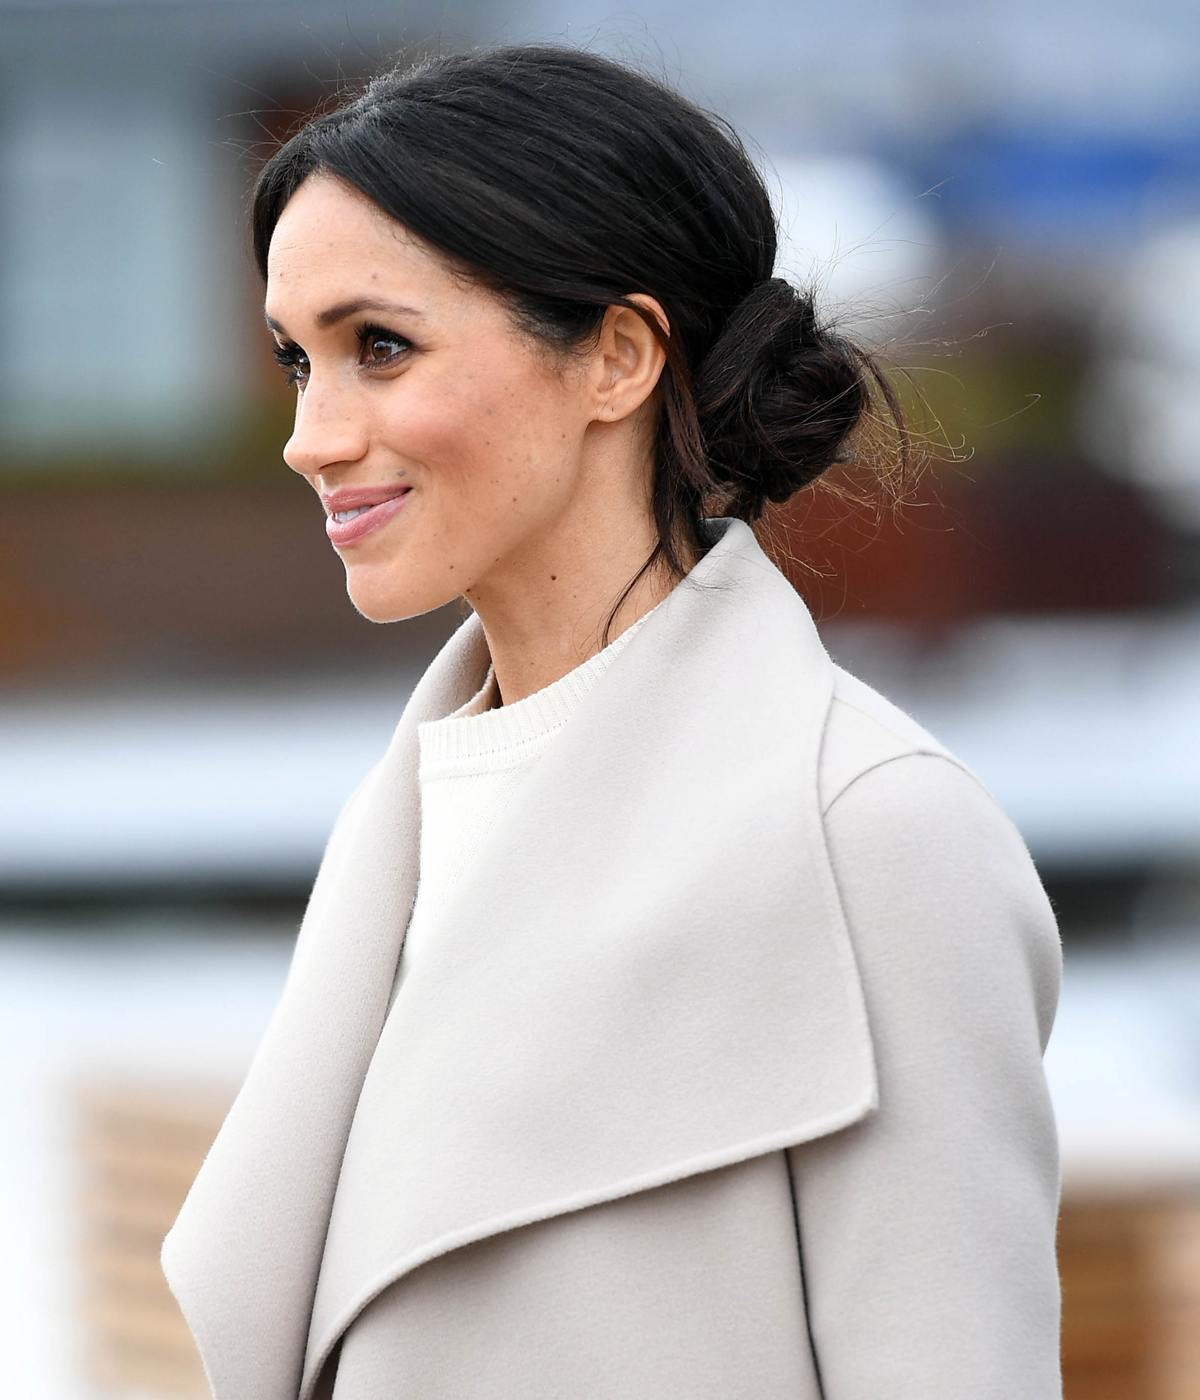 How Does Meghan Markle Keep Her Messy Bun from Falling Out?